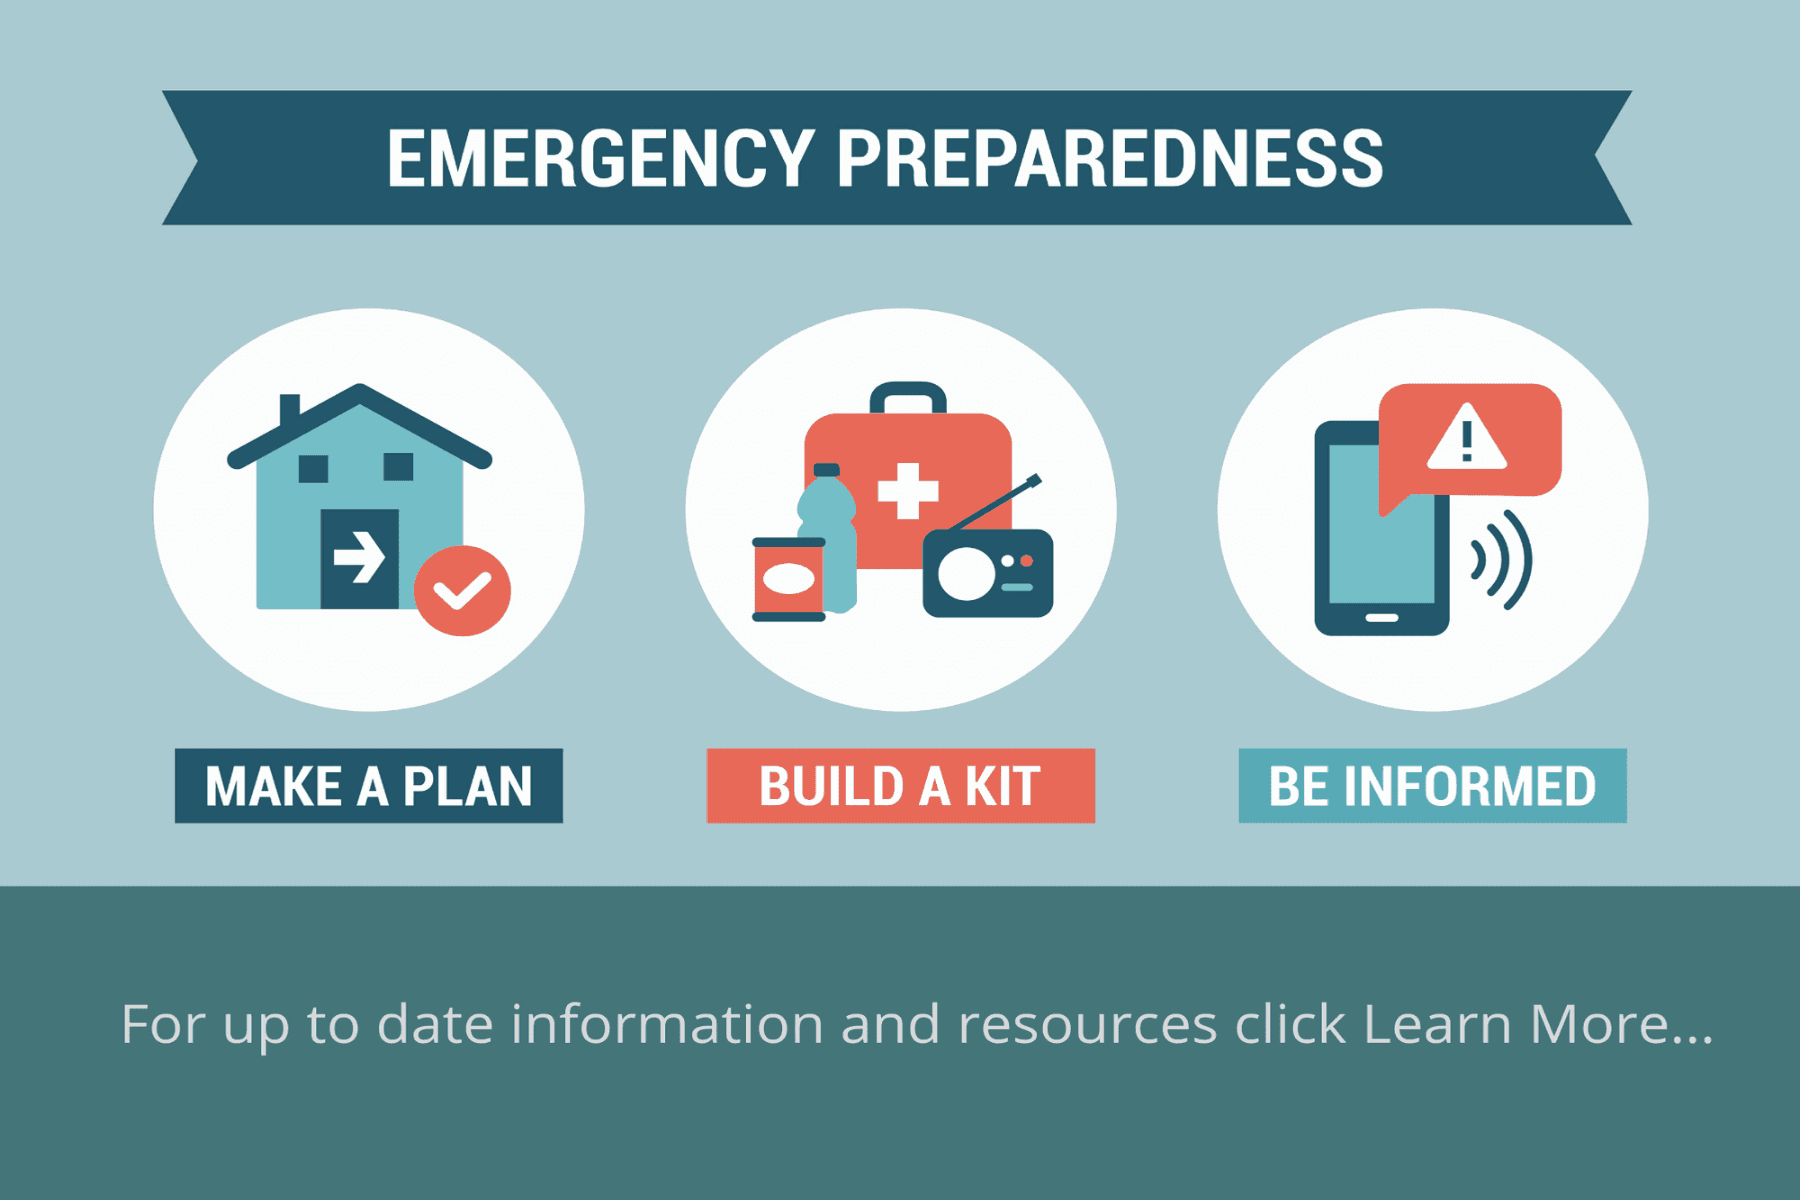 Emergency Preparedness image with with a home, first aid kit and phone